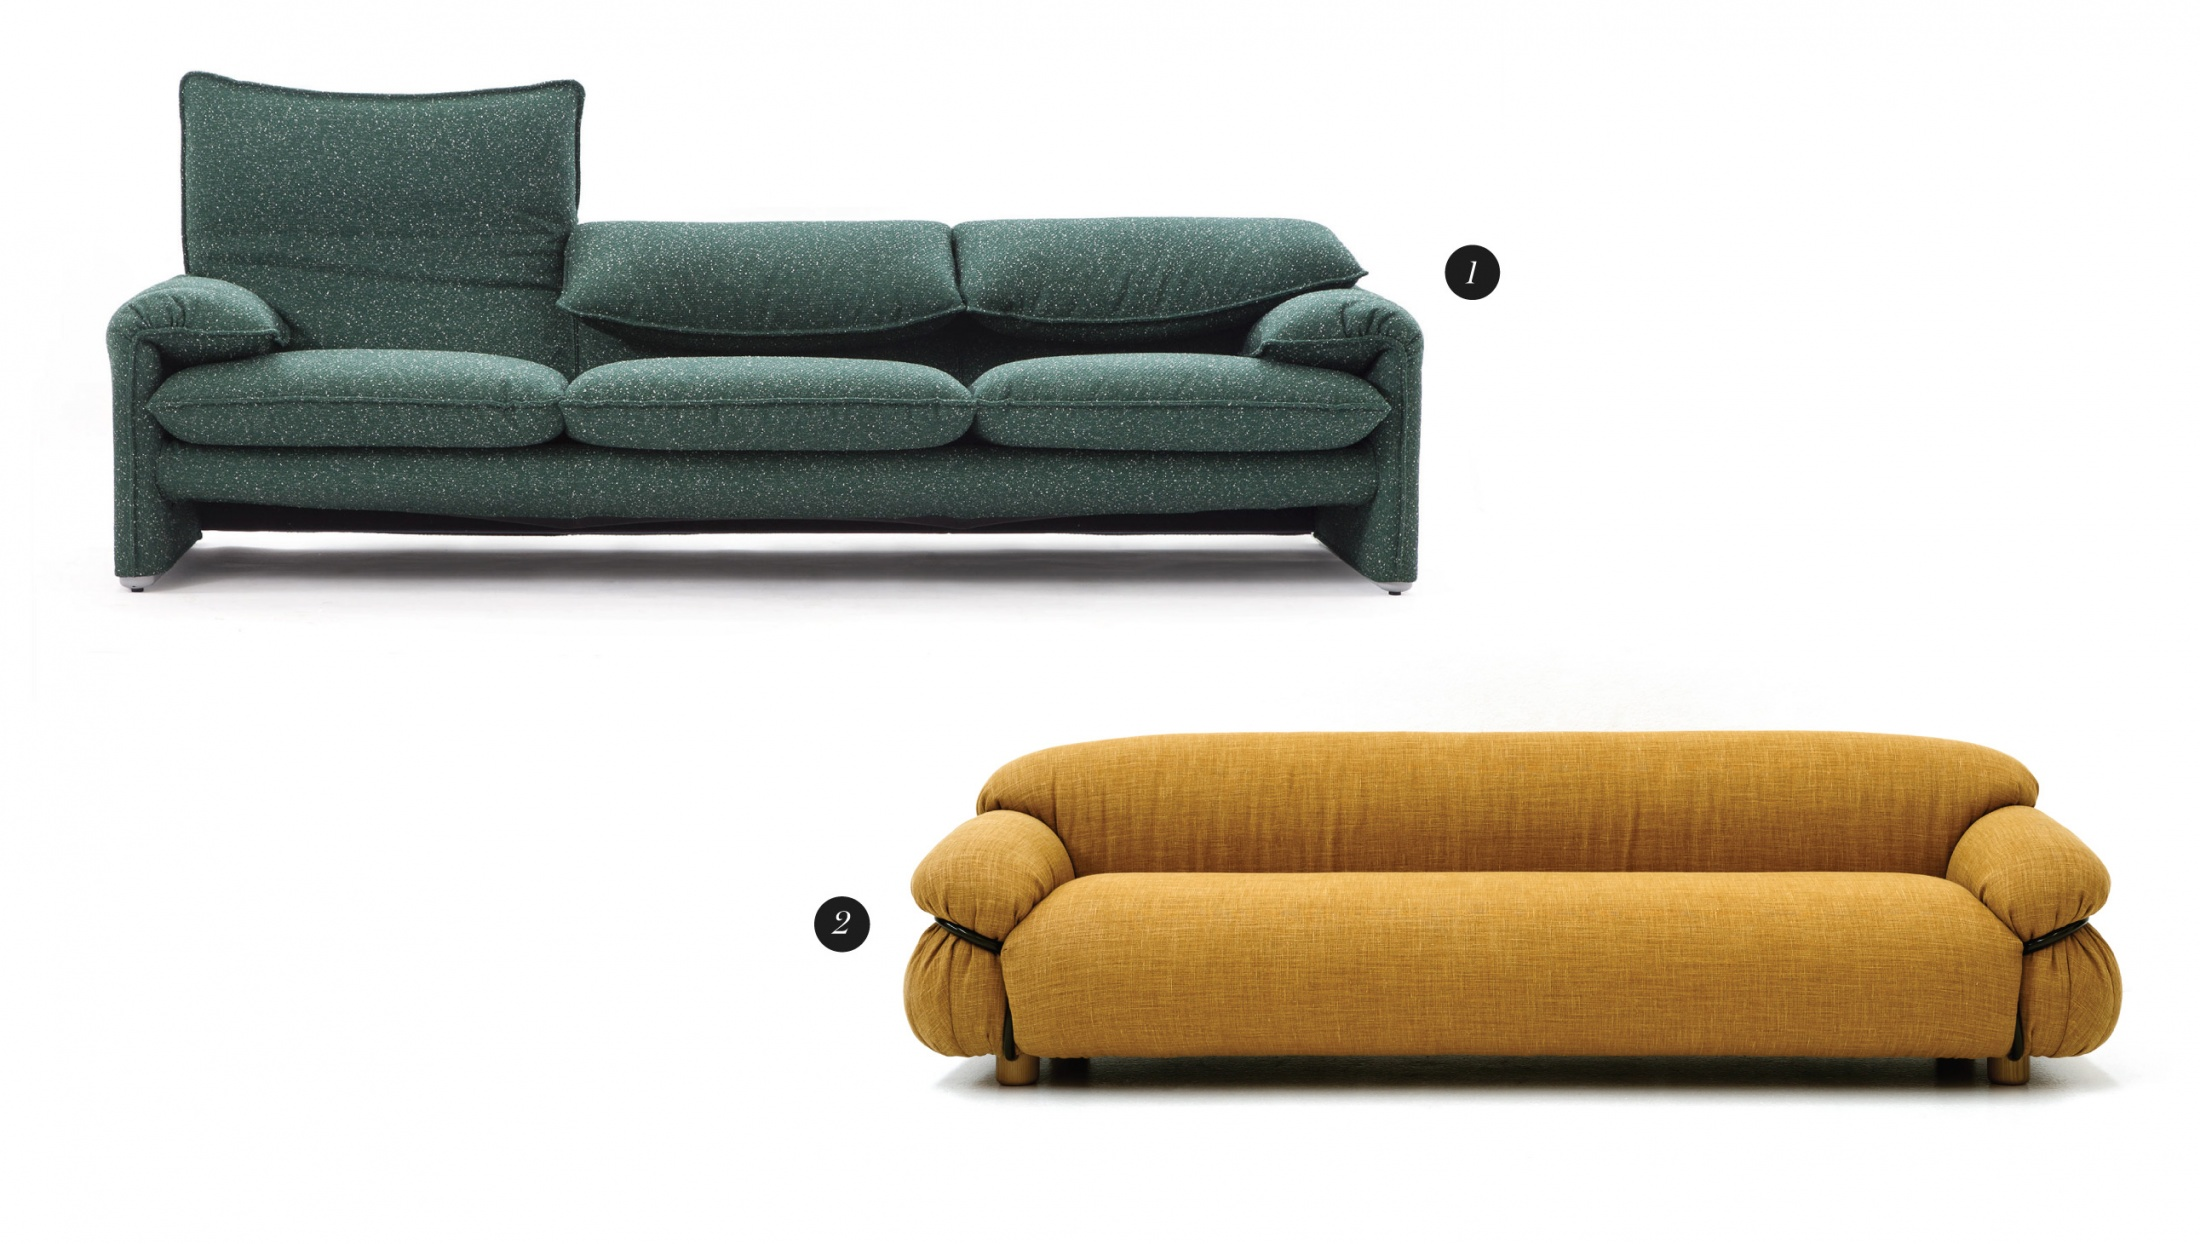 Australian Made Sofas The Best Sofa In The World